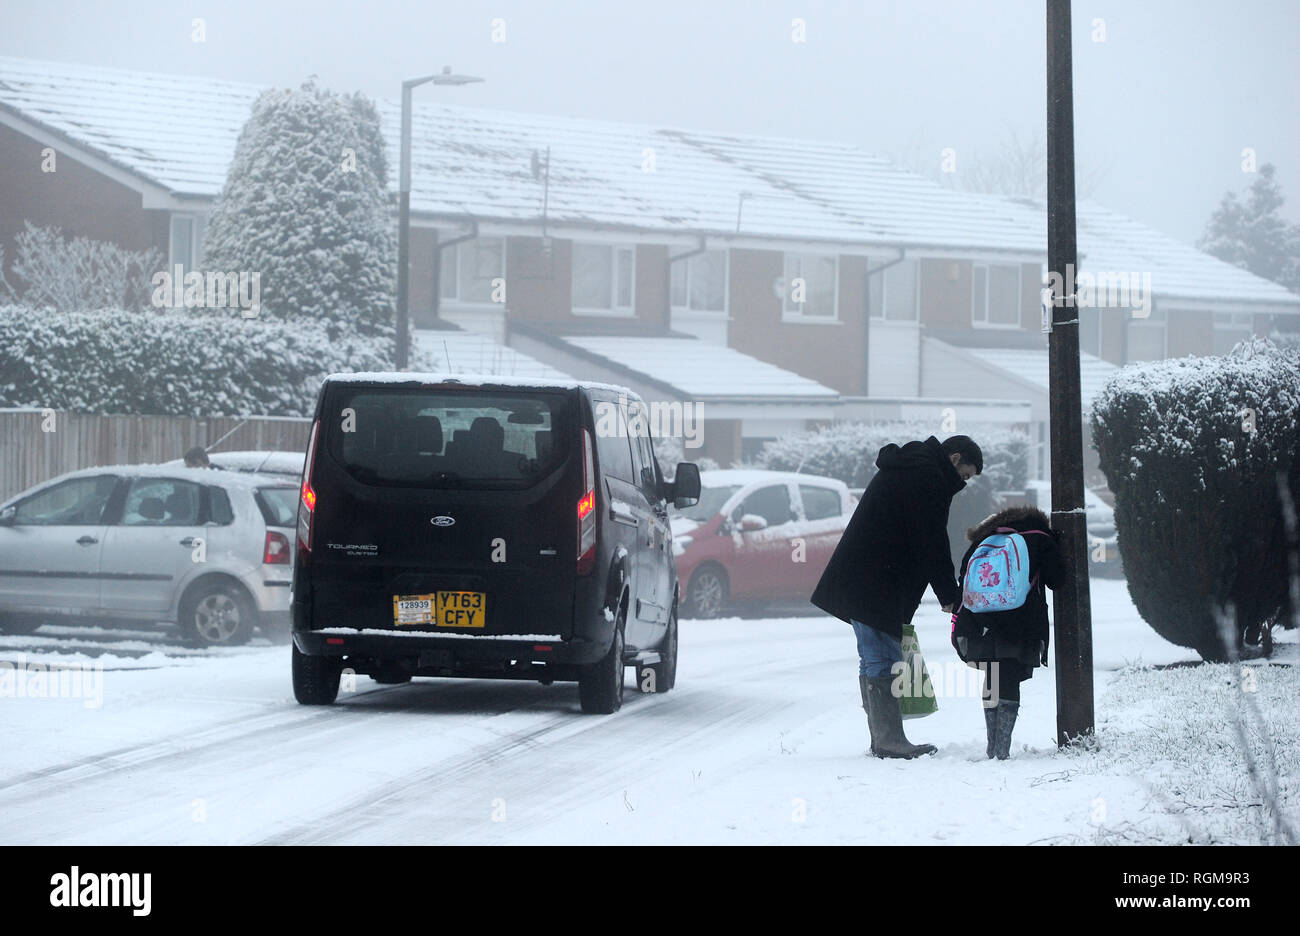 Bolton, Lancashire, UK. 30th January, 2019. Overnight snow and freezing fog brought treacherous conditions to Bolton, Lancashire today. The big freeze is set to continue for the next 24 hours at least in the North West of England. Drivers struggle to get along the icy roads. Picture by Paul Heyes, Wednesday January 30, 2019. Credit: Paul Heyes/Alamy Live News Stock Photo